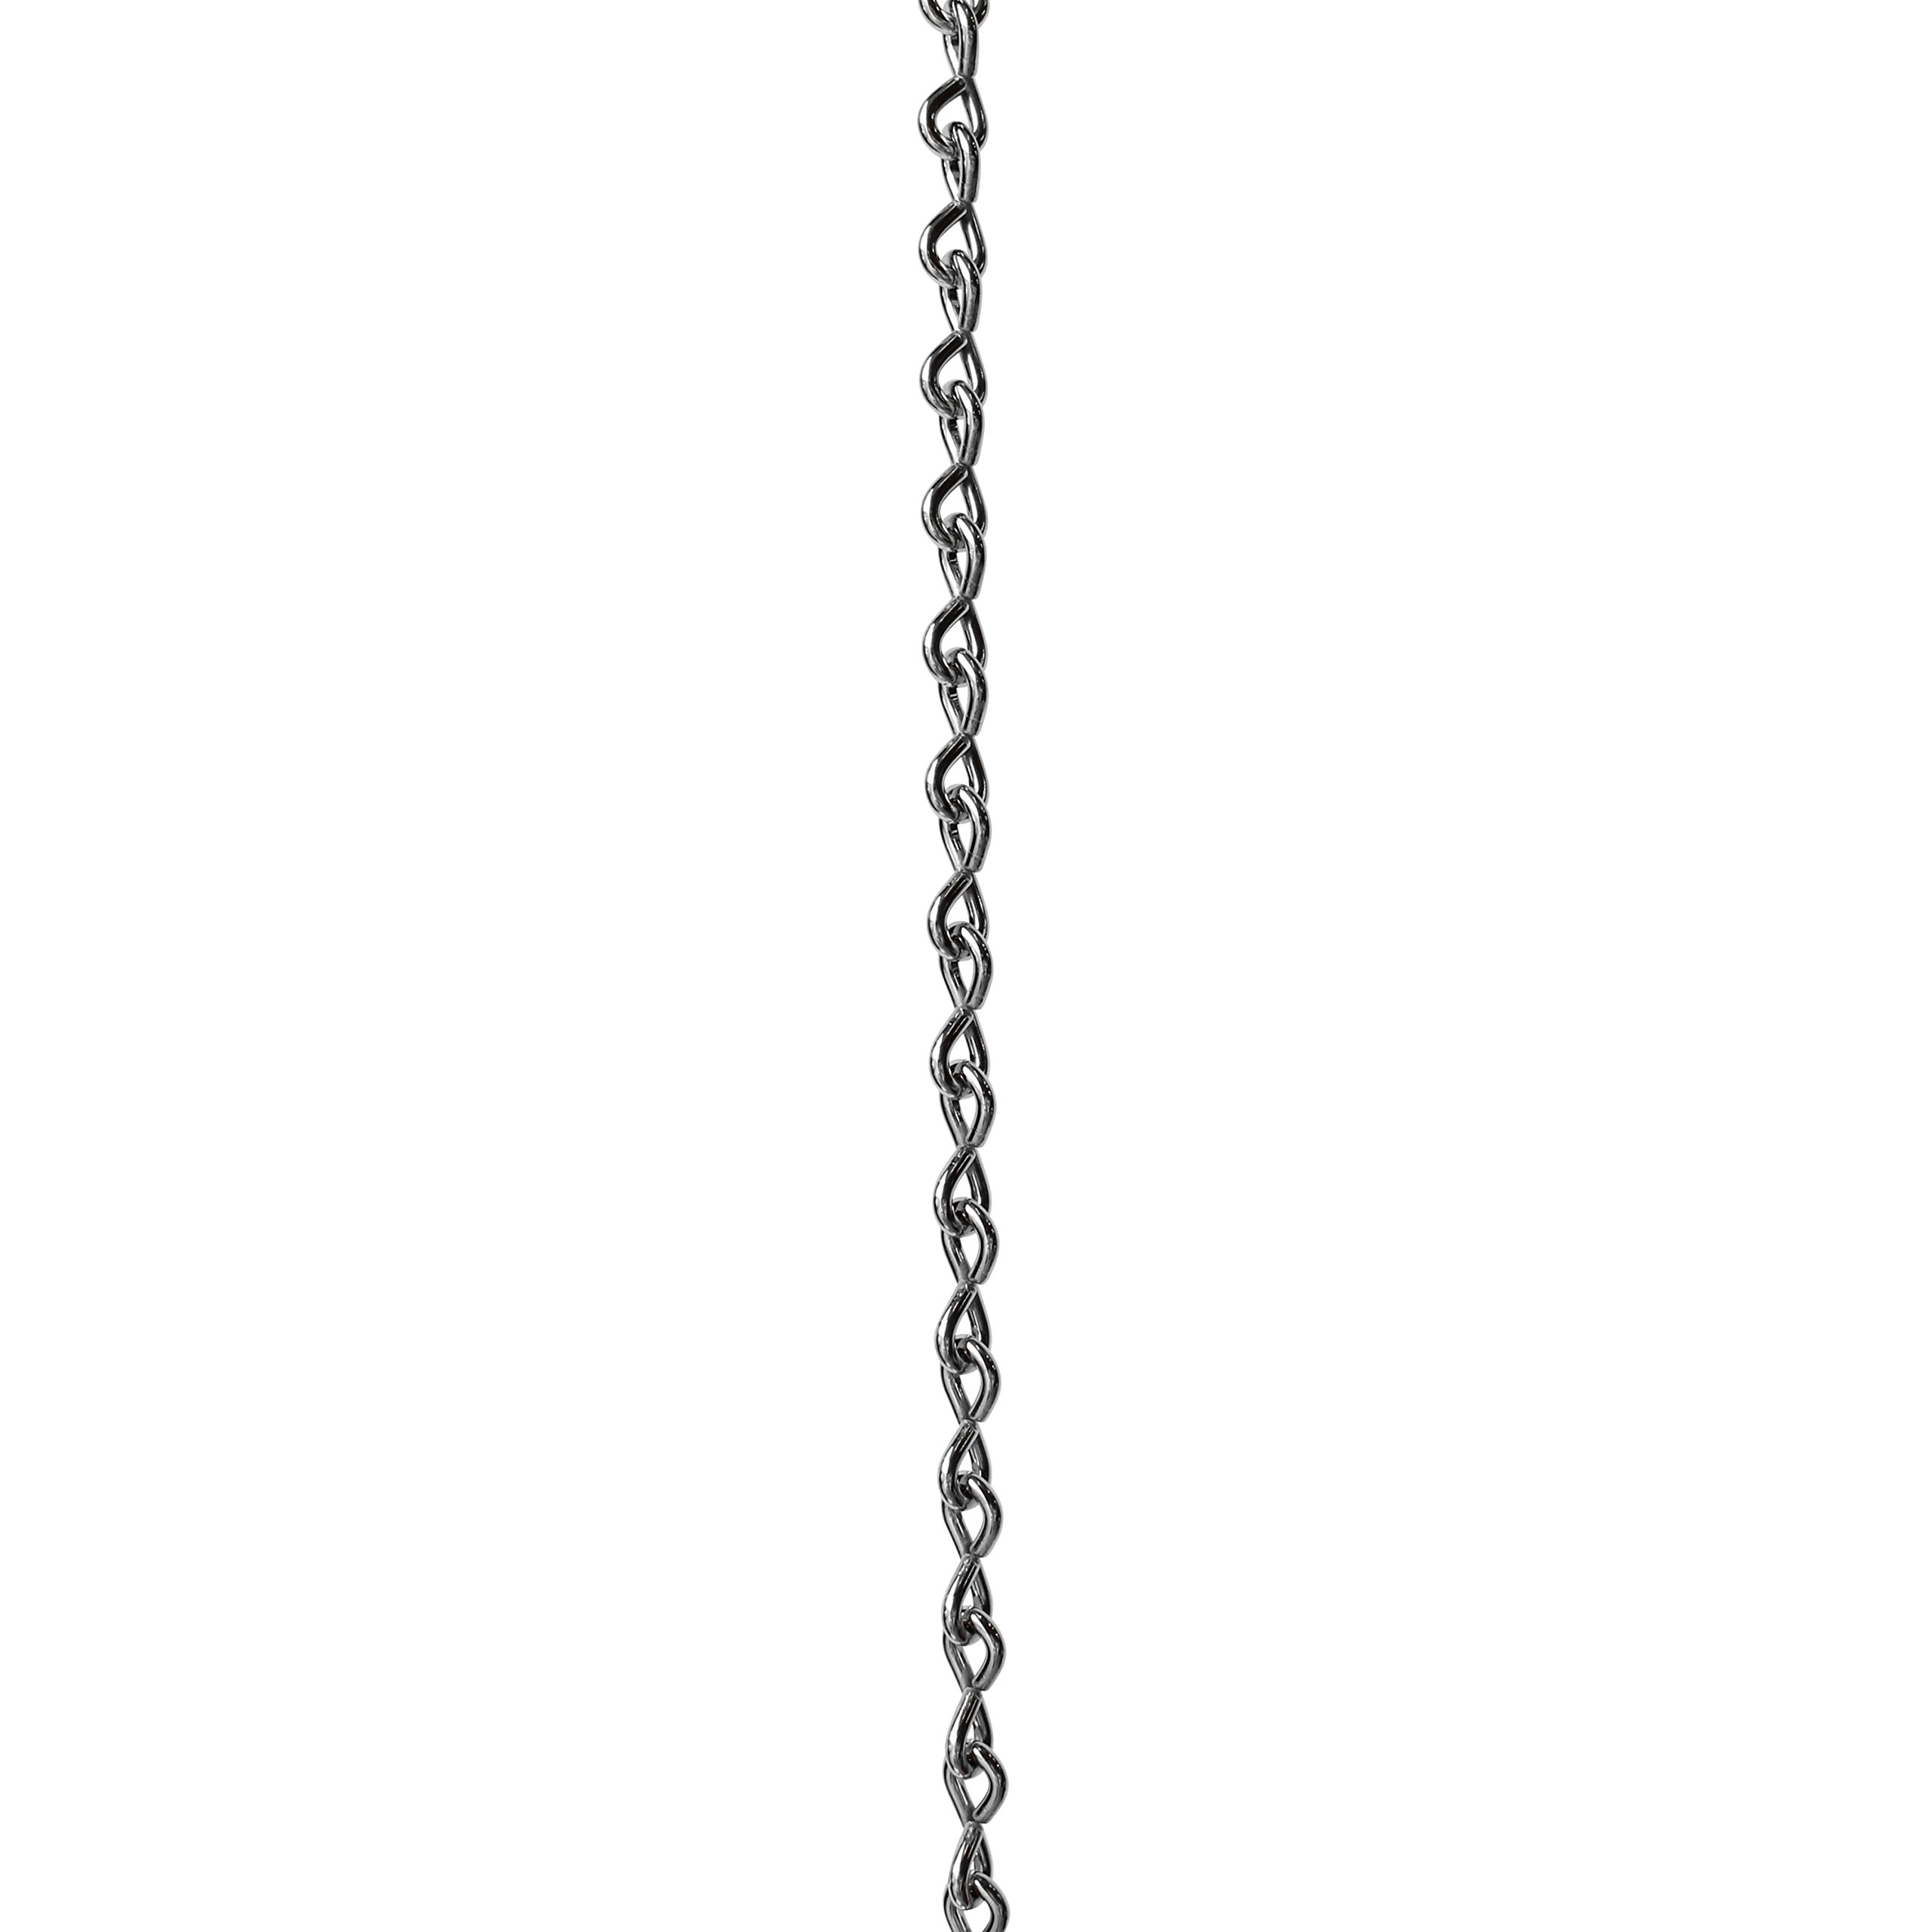 RCH Hardware CH-S50-06-PN-3 | 5 Gauge Decorative Solid Steel Single Jack Fixture Chain | 3 Foot Increments | Polished Nickel Finish